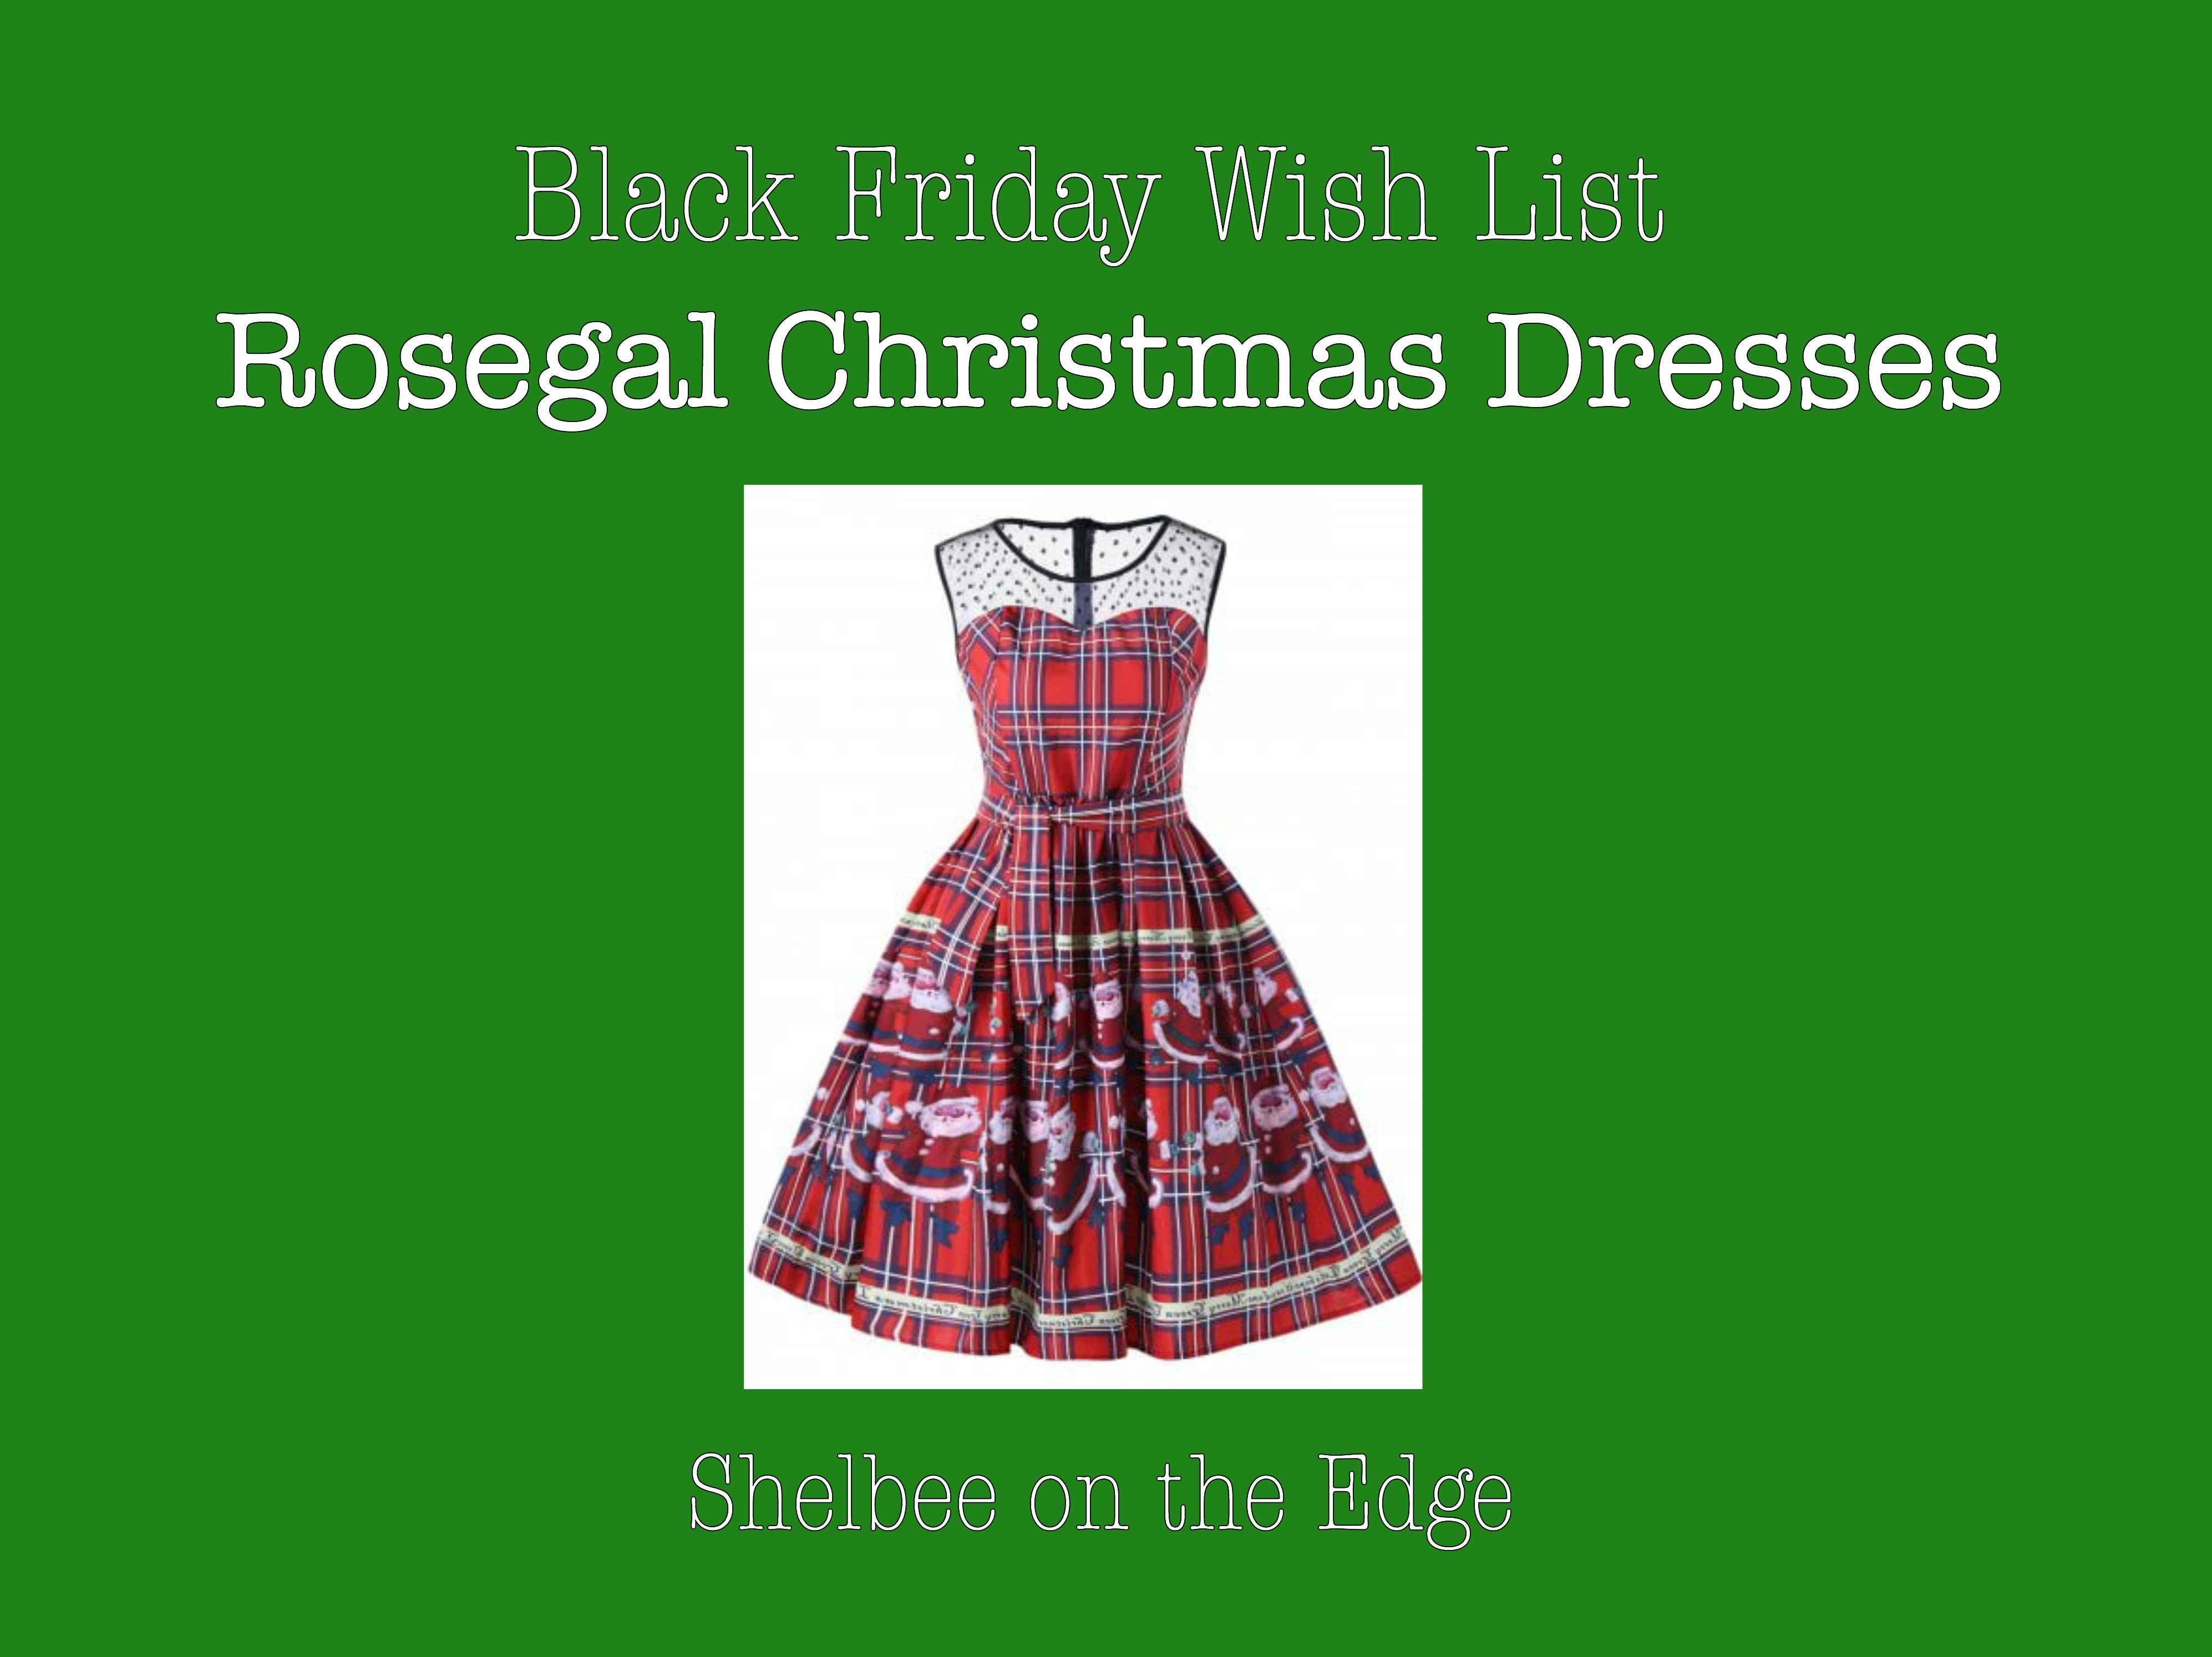 Black Friday Wish List: Rosegal Christmas Dresses